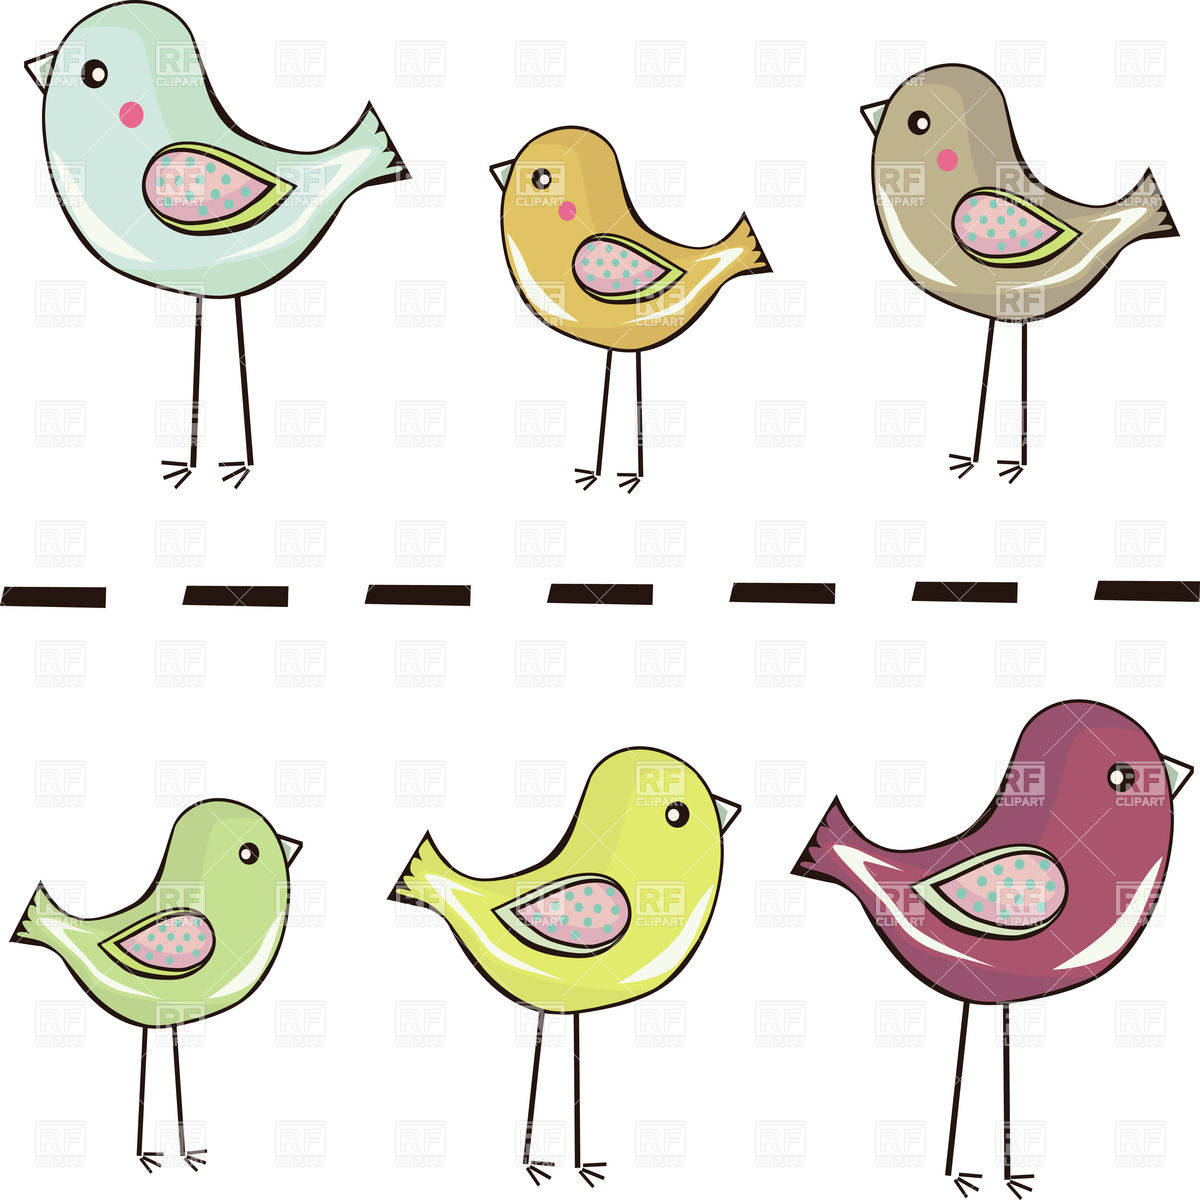 Cute standing cartoon birds and nestlings Vector Image #34066.